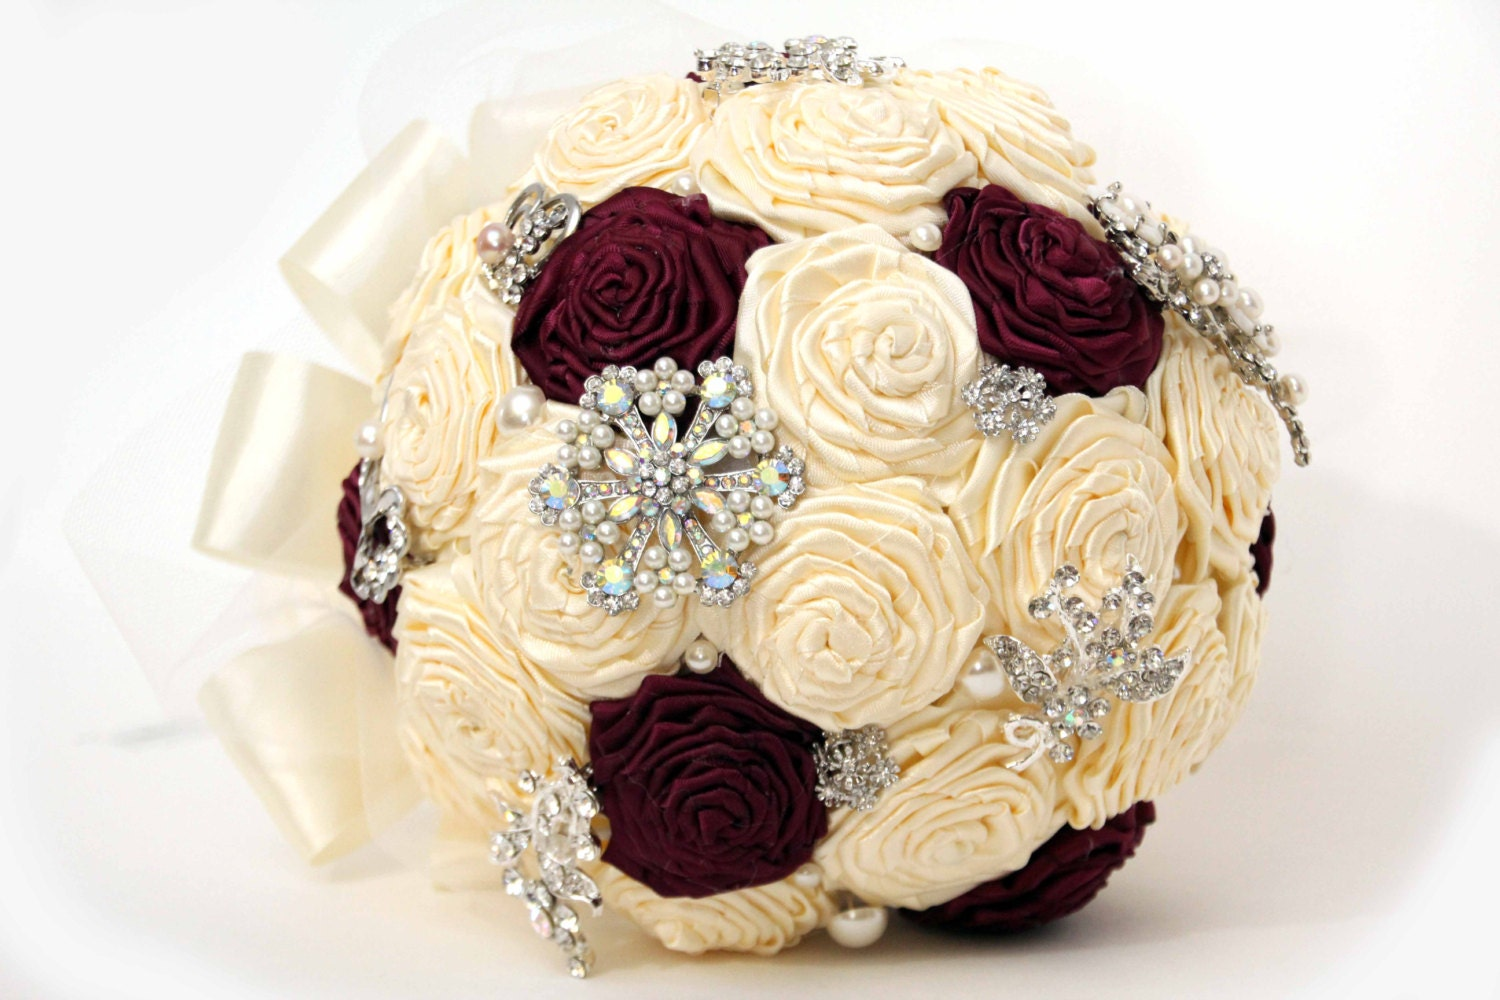 Bridal Bouquet Out Of Ribbons : Bridal brooch bouquet ribbon rose ready to ship by